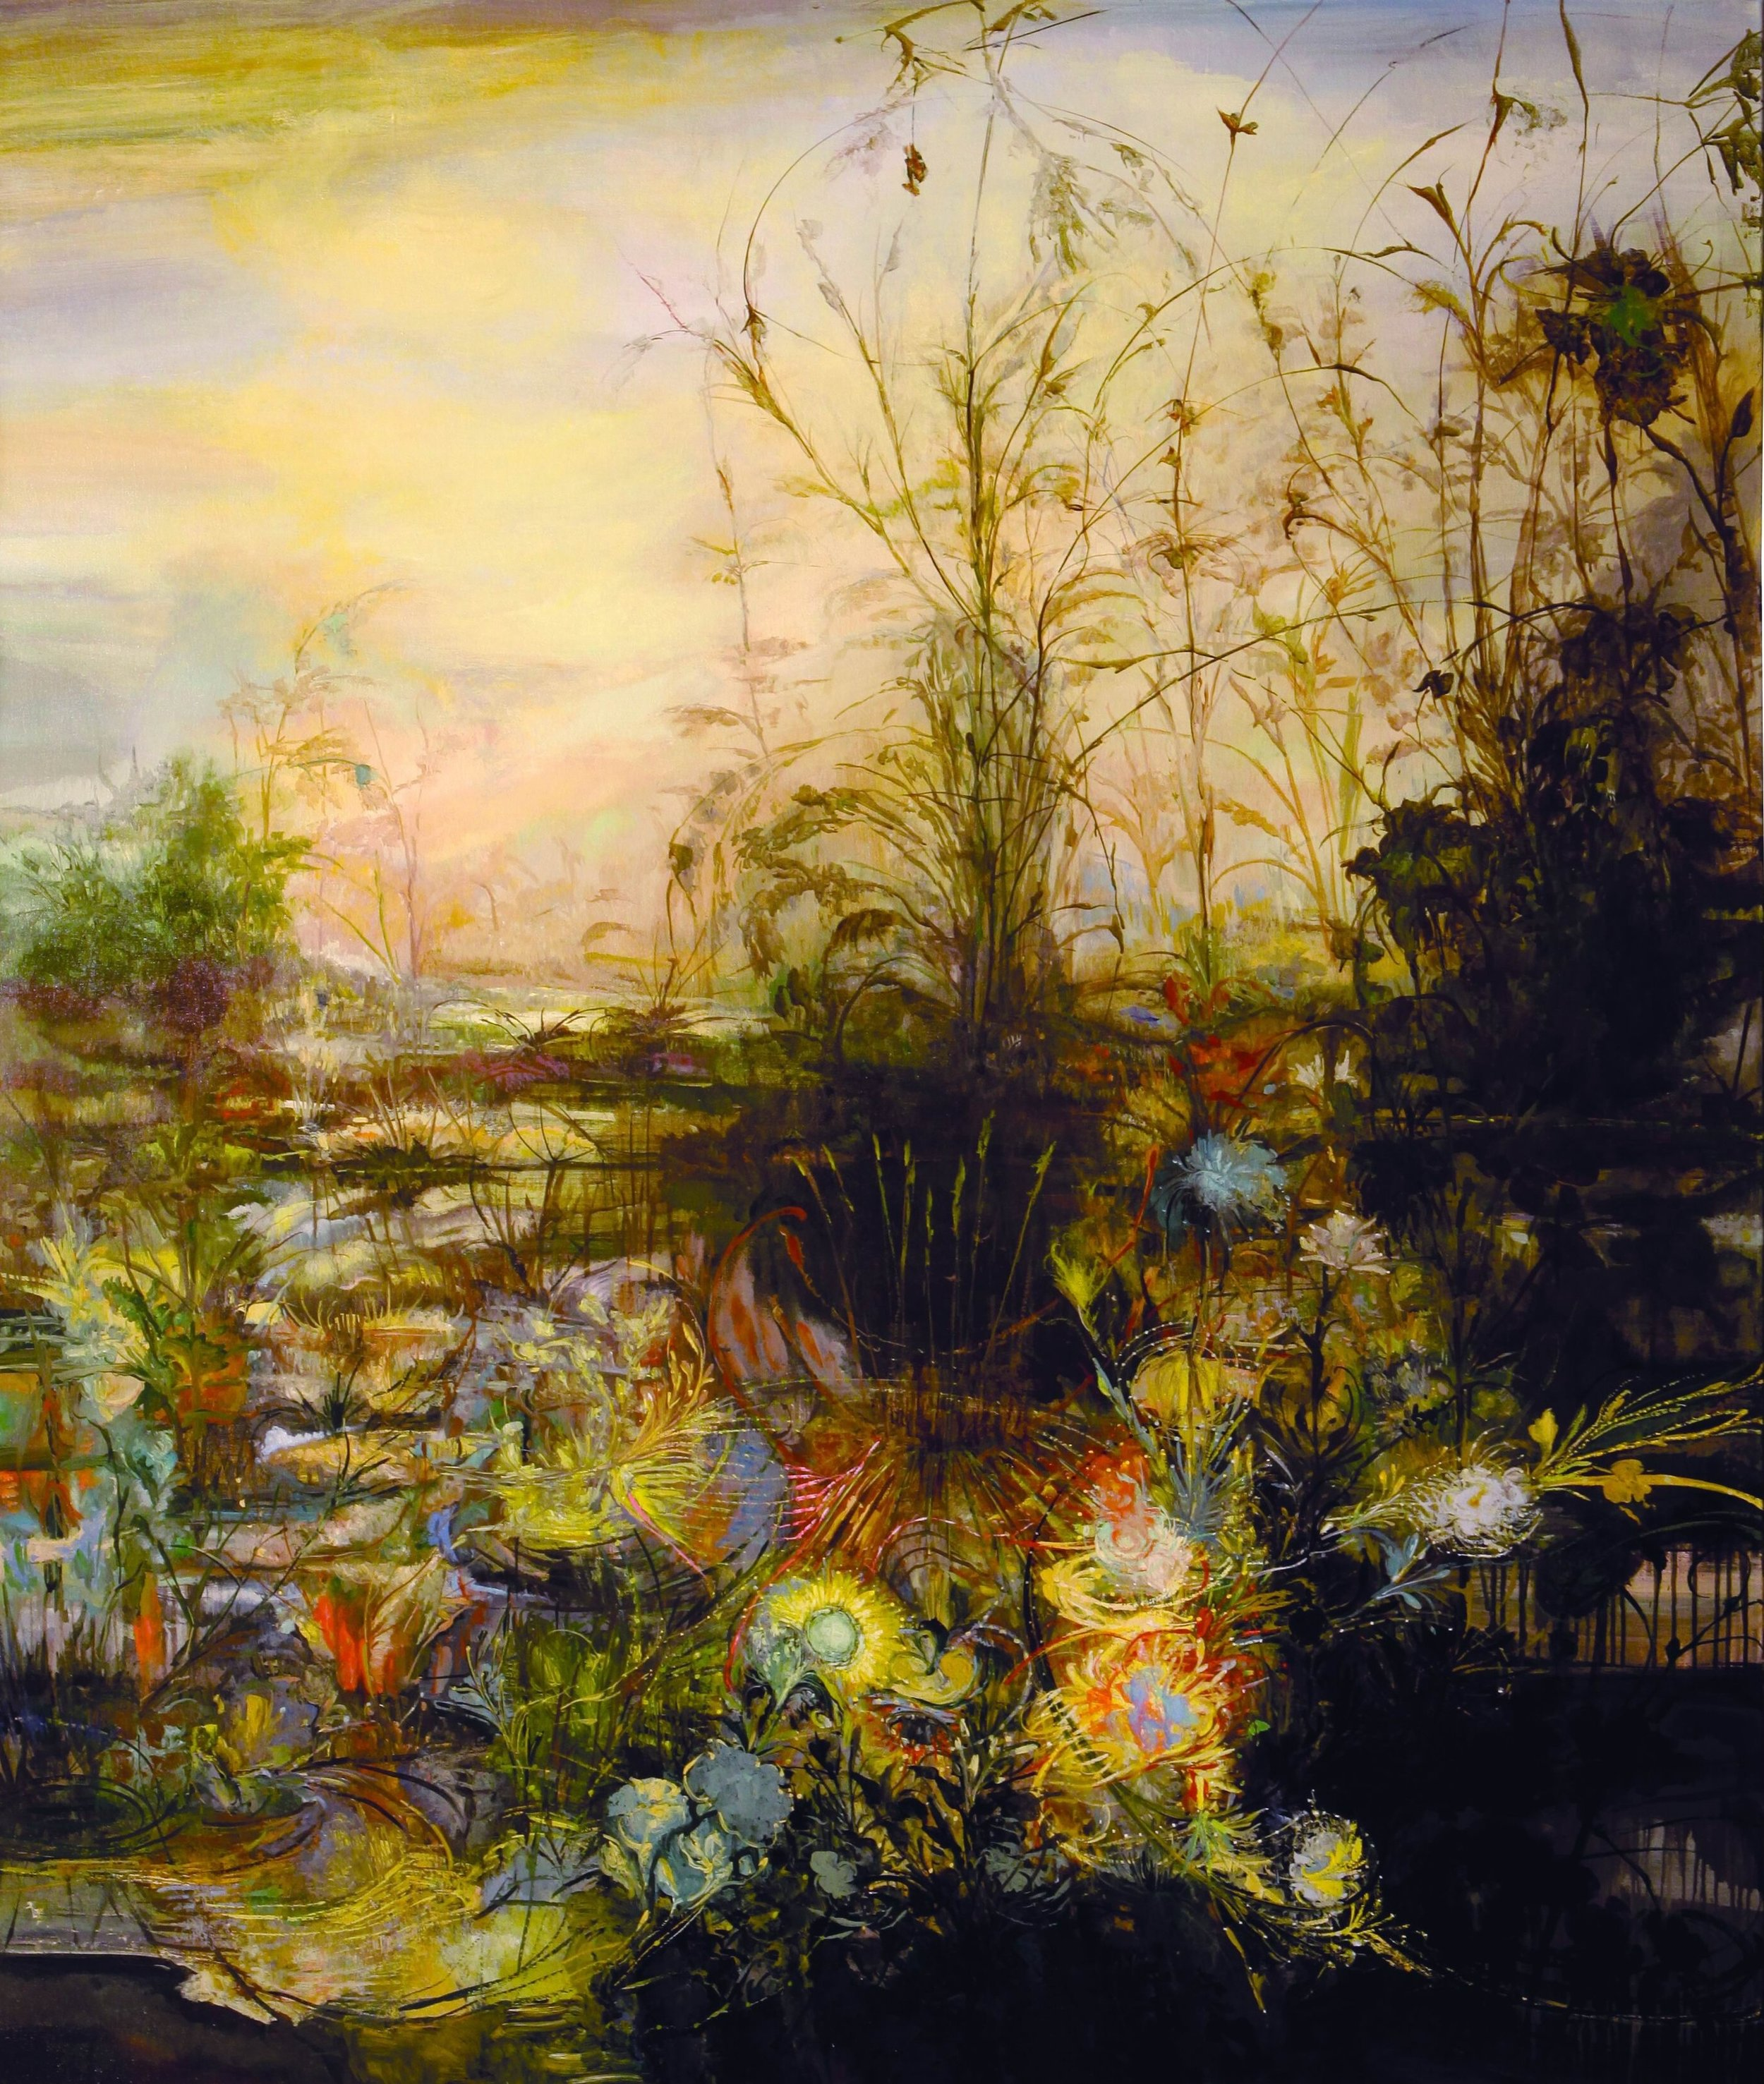 Swamp Field, Late October, 2008, 78 x 66 inches, acrylic on canvas